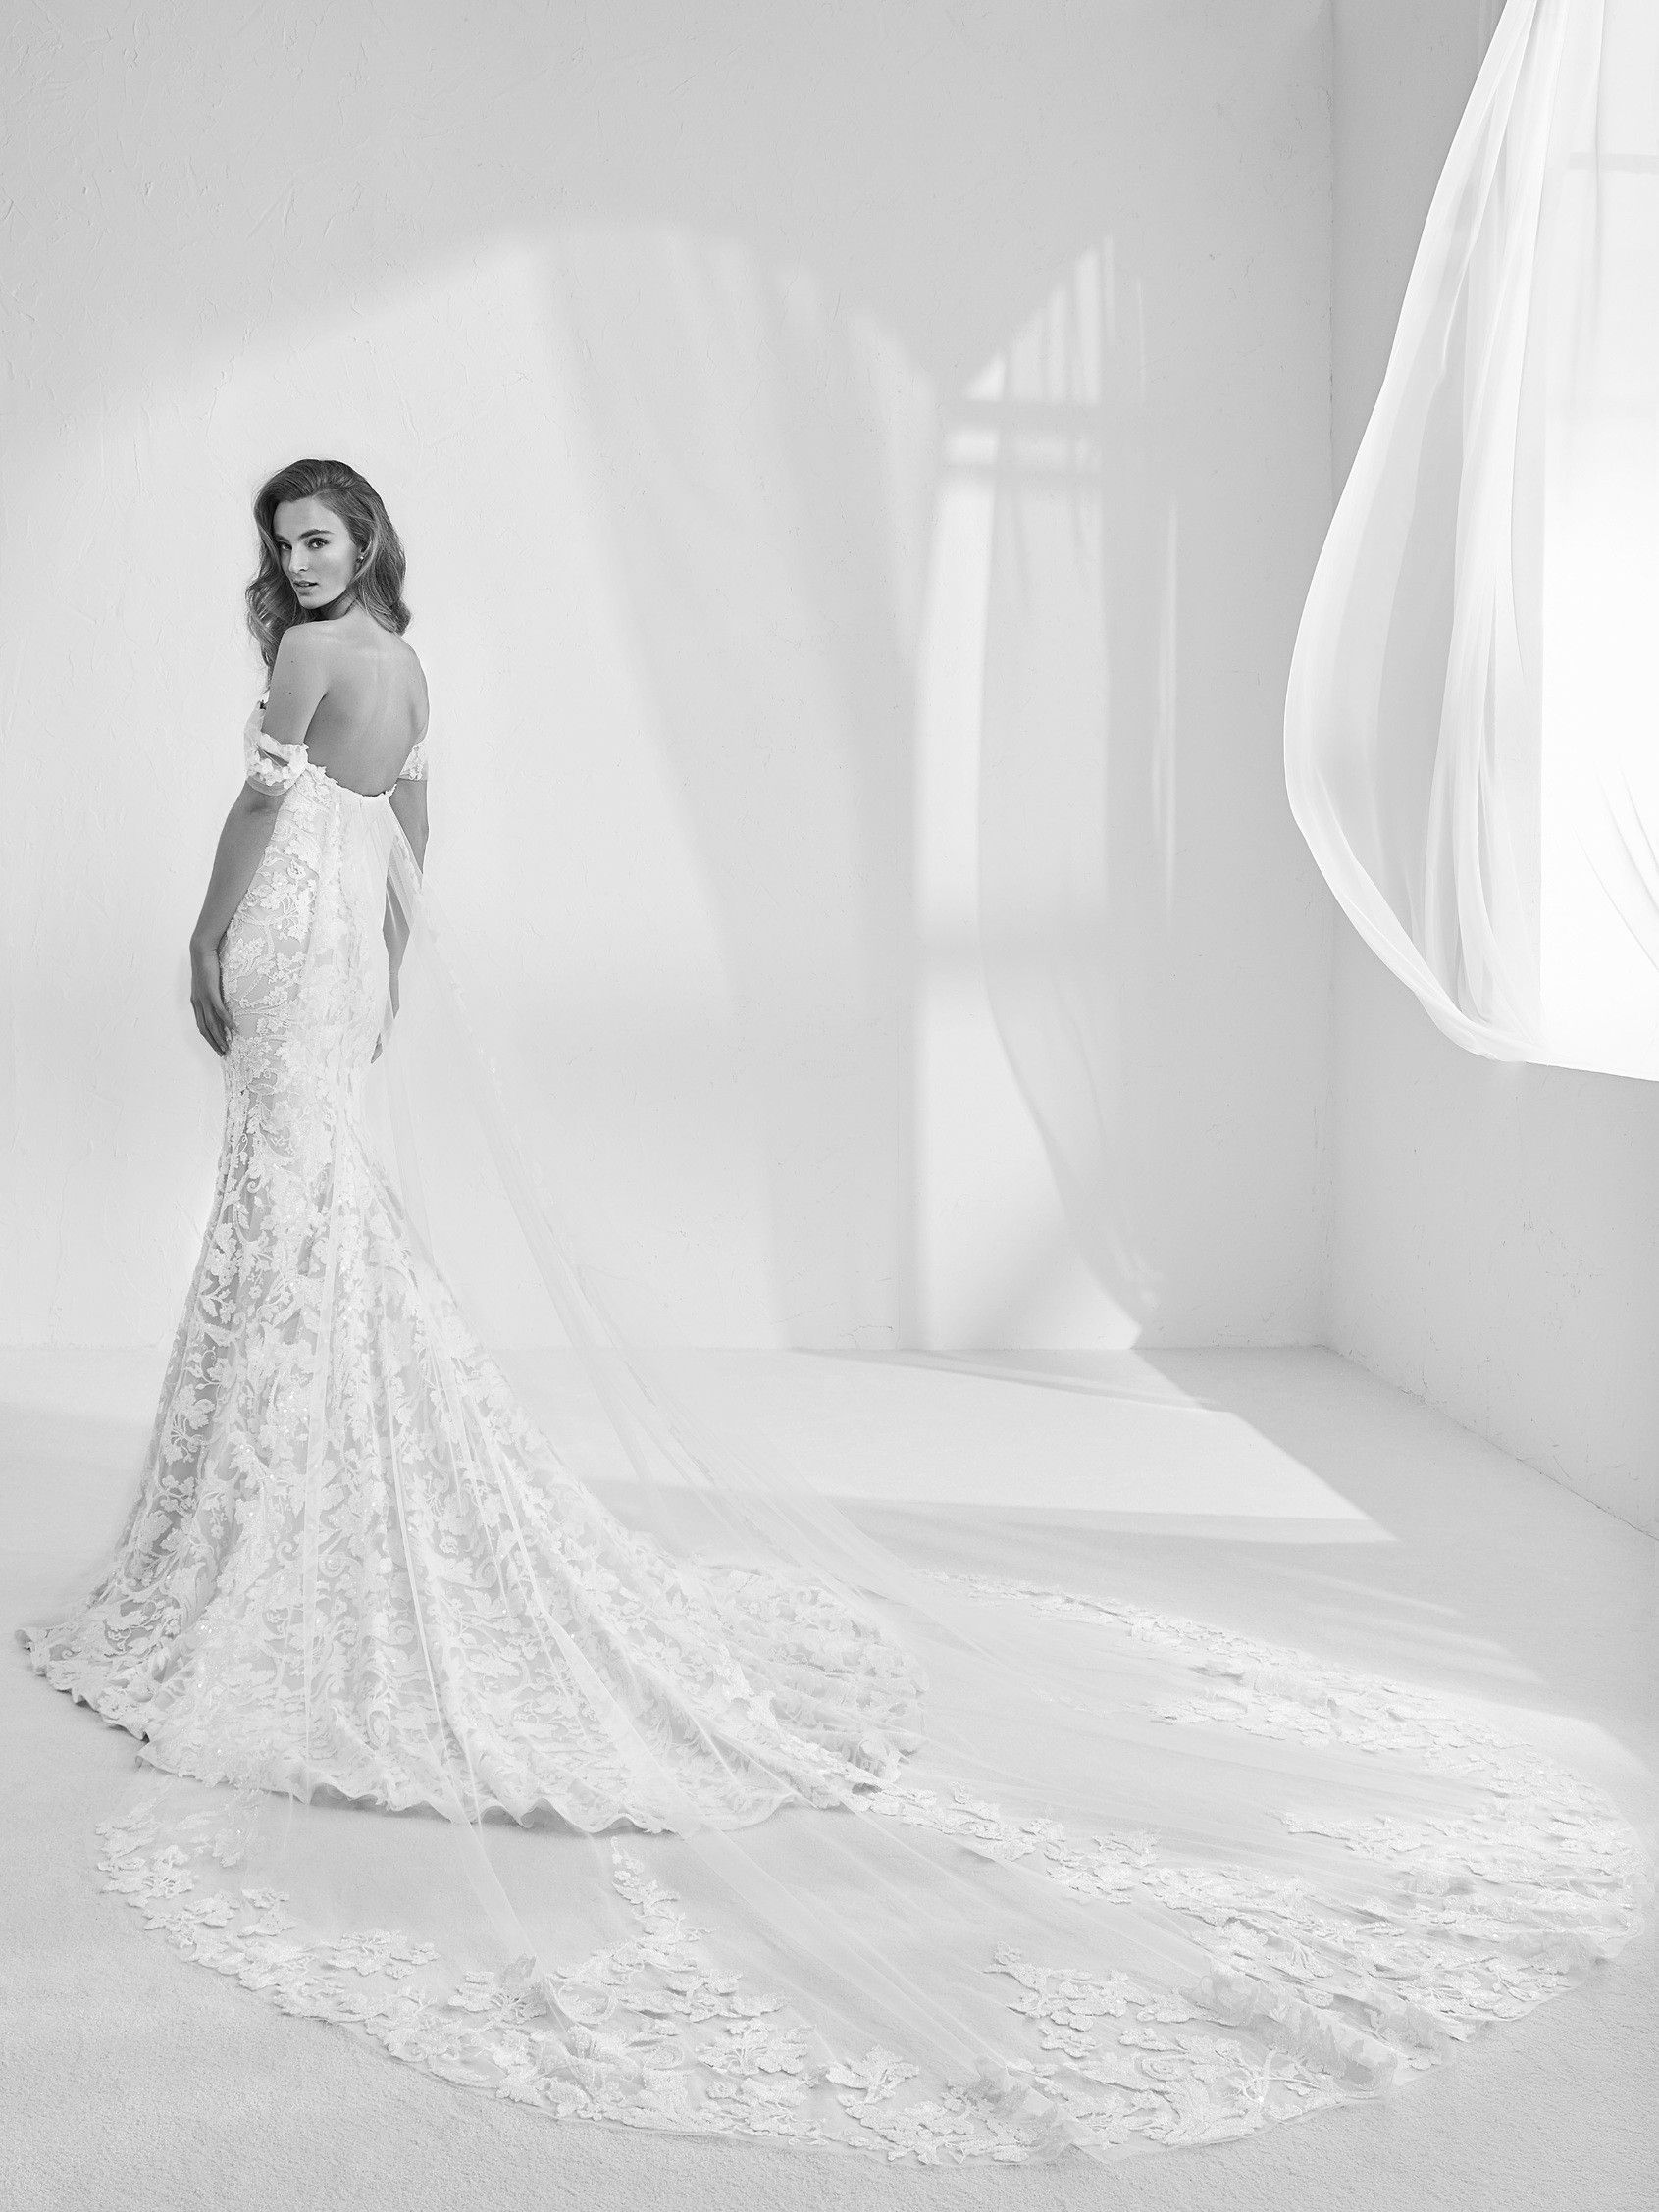 Strapless fit and flare gown in tulle and floral appliqués in